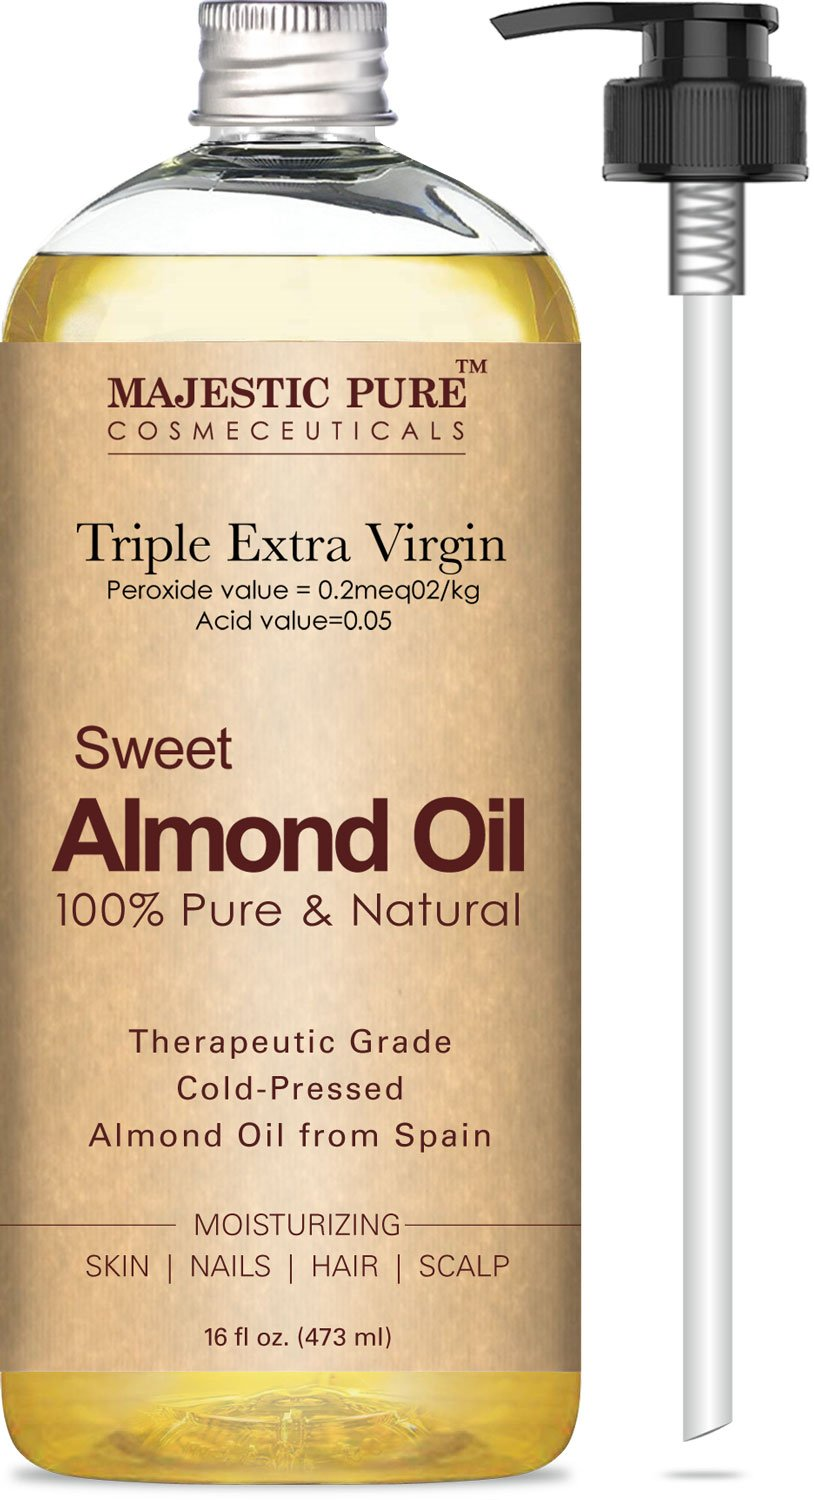 Majestic Pure Sweet Almond Oil, Super Triple A Grade Quality, 100% Pure and Natural from Spain, Cold Pressed, 16 fl oz. by Majestic Pure